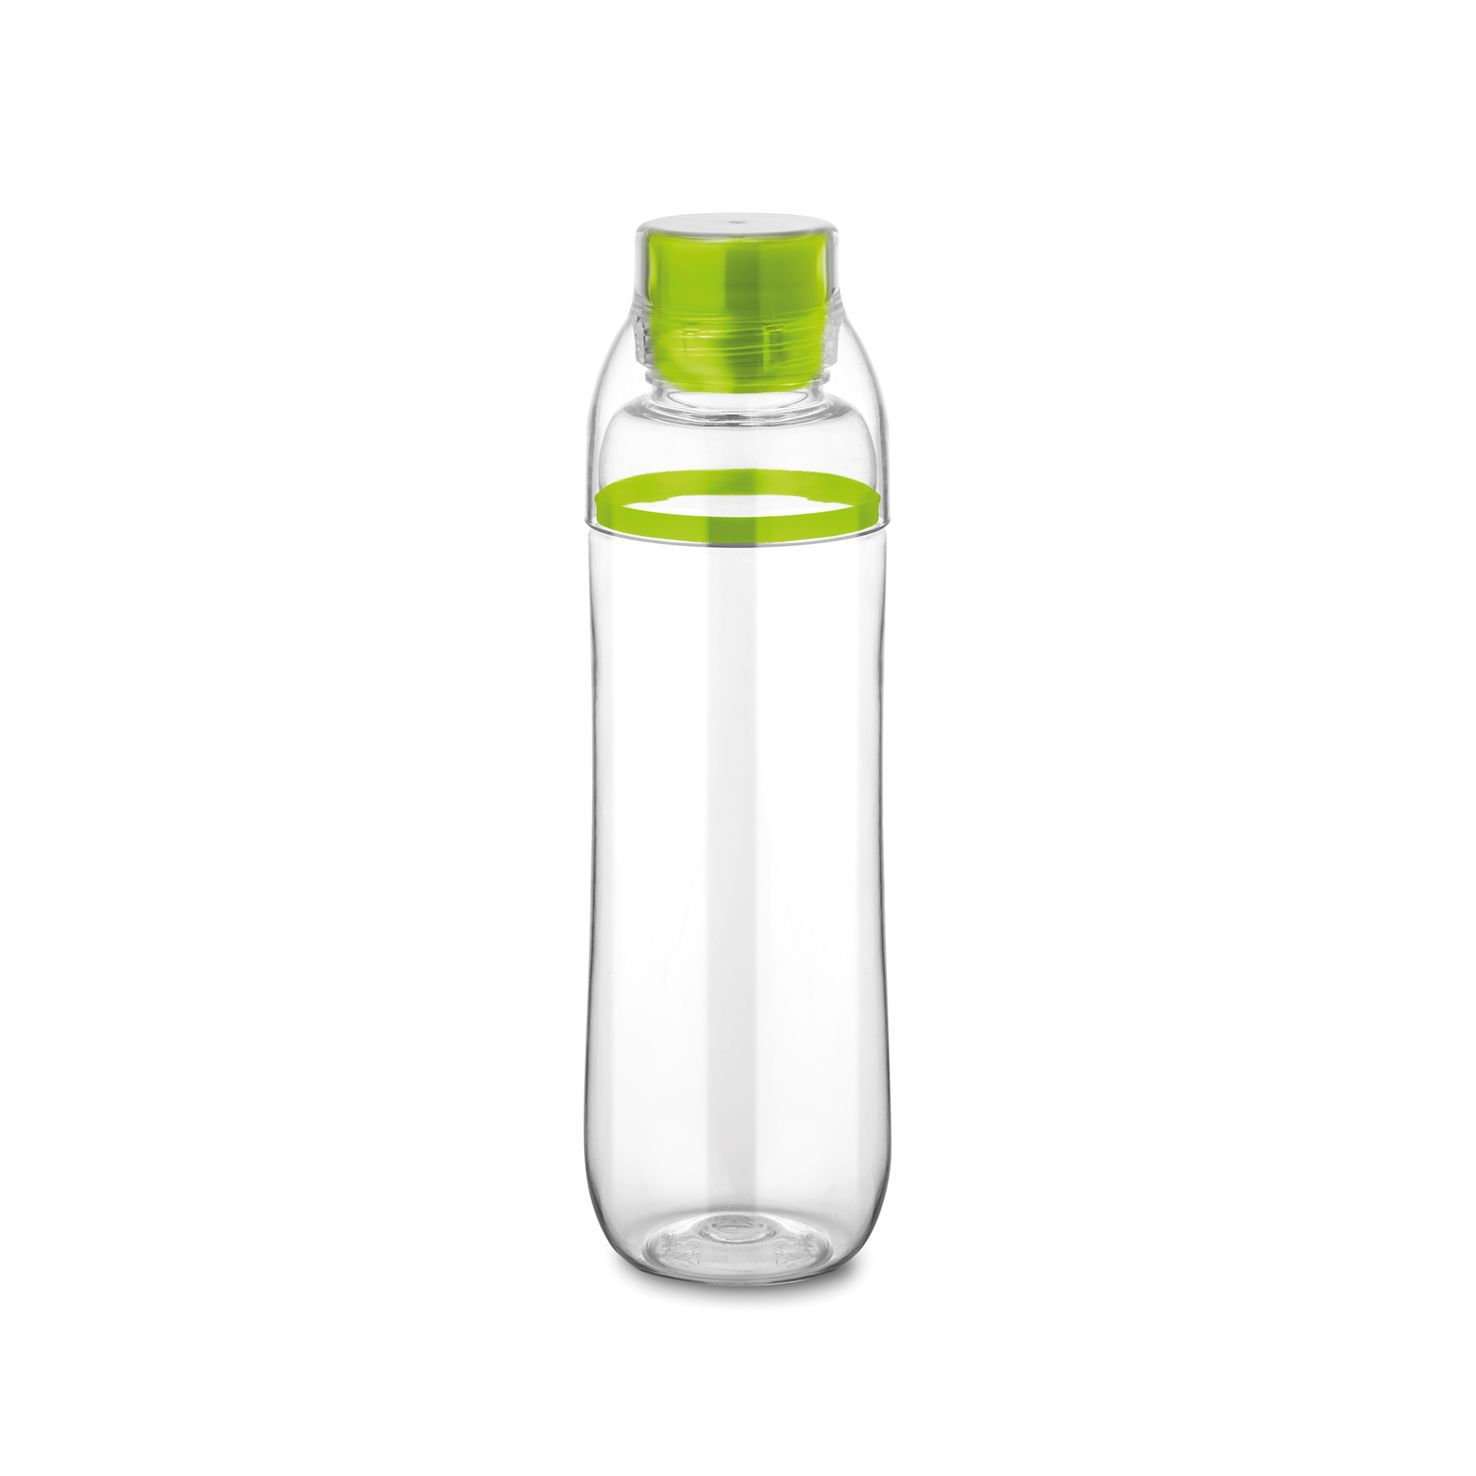 Lime Waterfles van Tritan | 700 ml